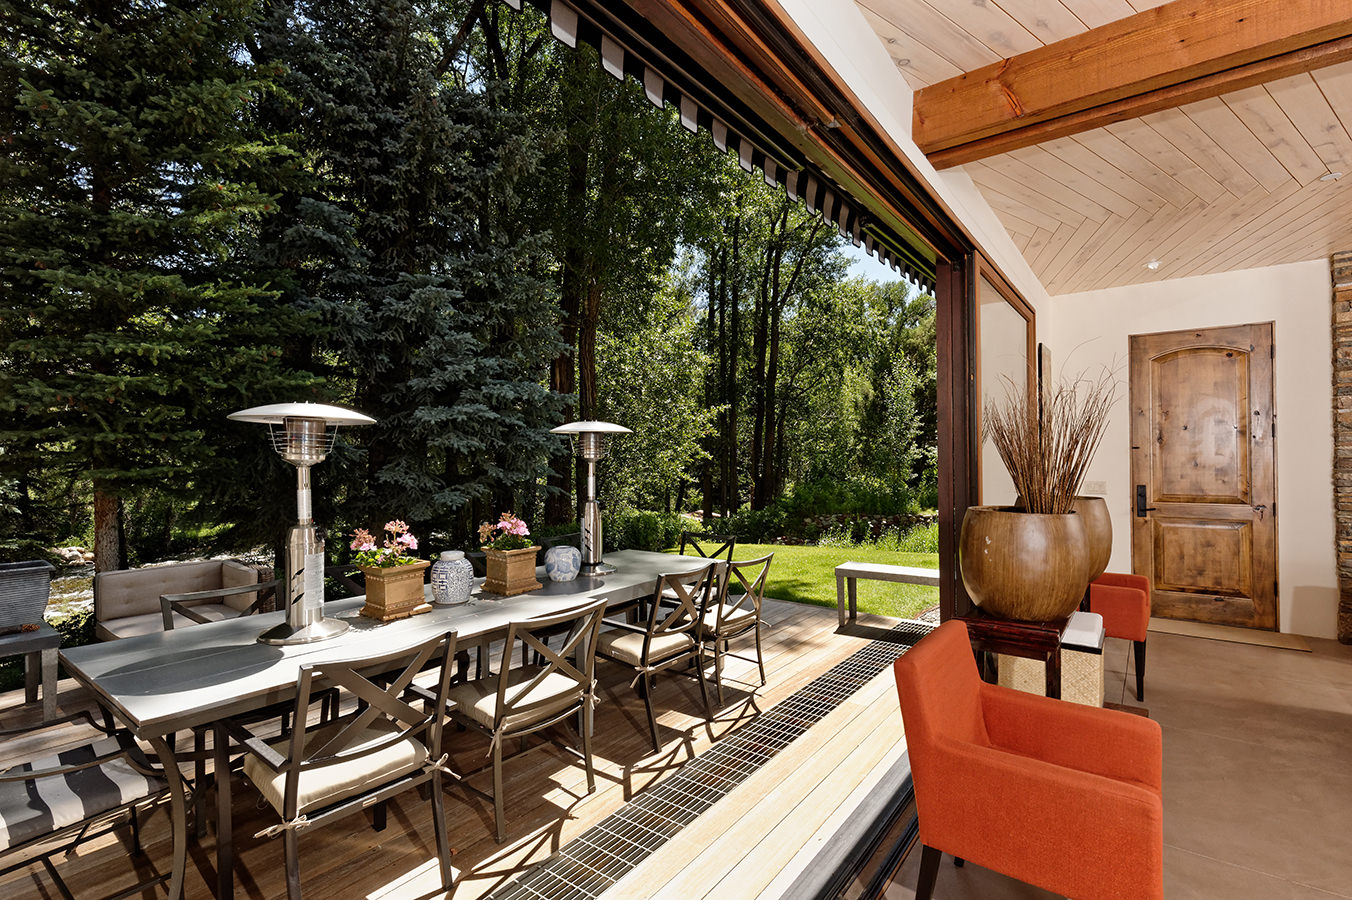 Living room and a big outdoor deck photographed by Mike Lyons in Woody Creek Colorado